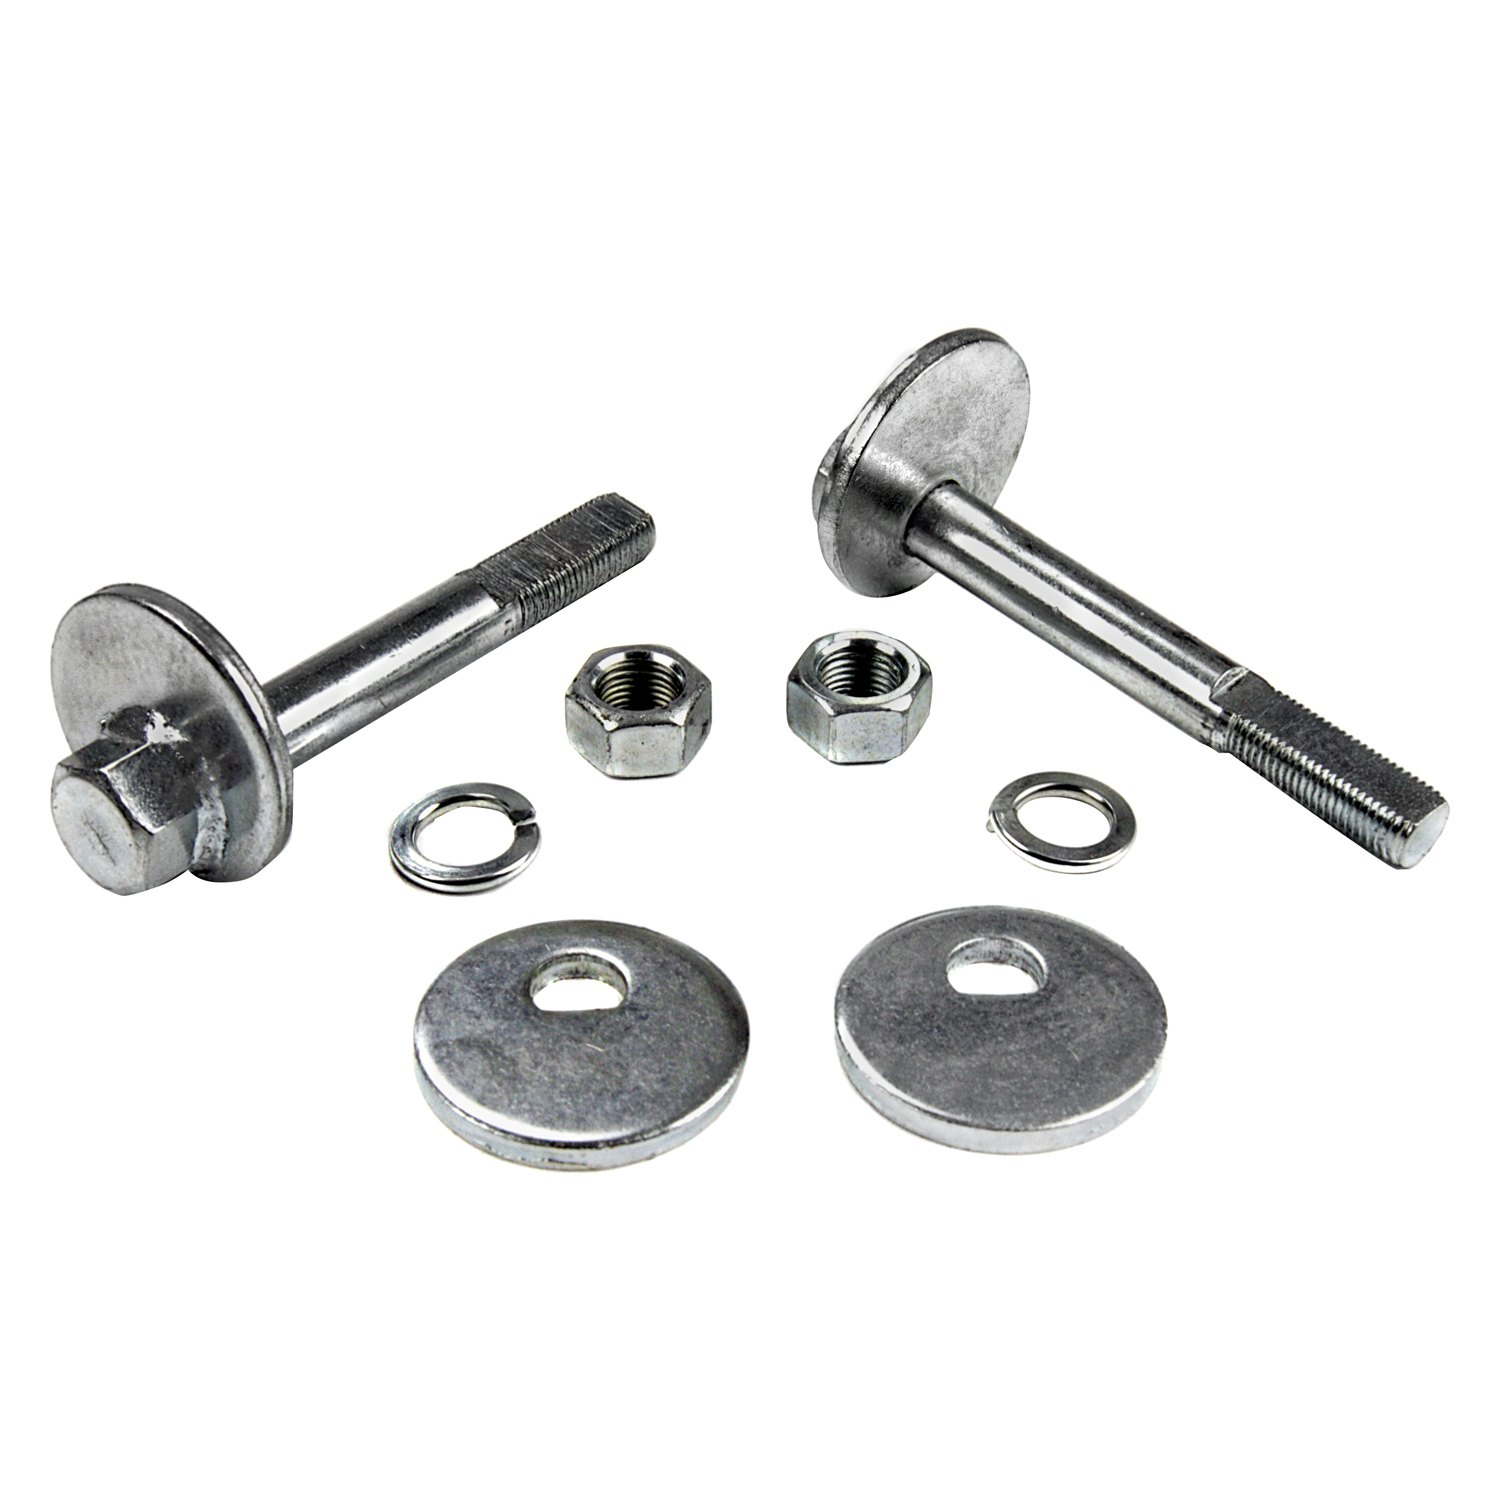 Proforged 174 Ford Mustang 1967 Front Alignment Camber Bolt Kit